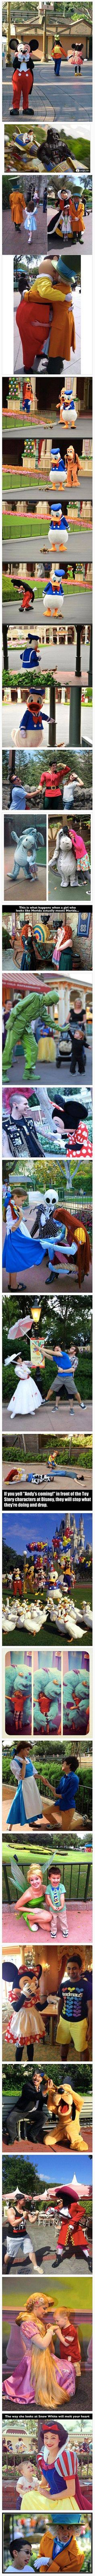 Love this! Especially since I know who that 'Gaston' really is. :P